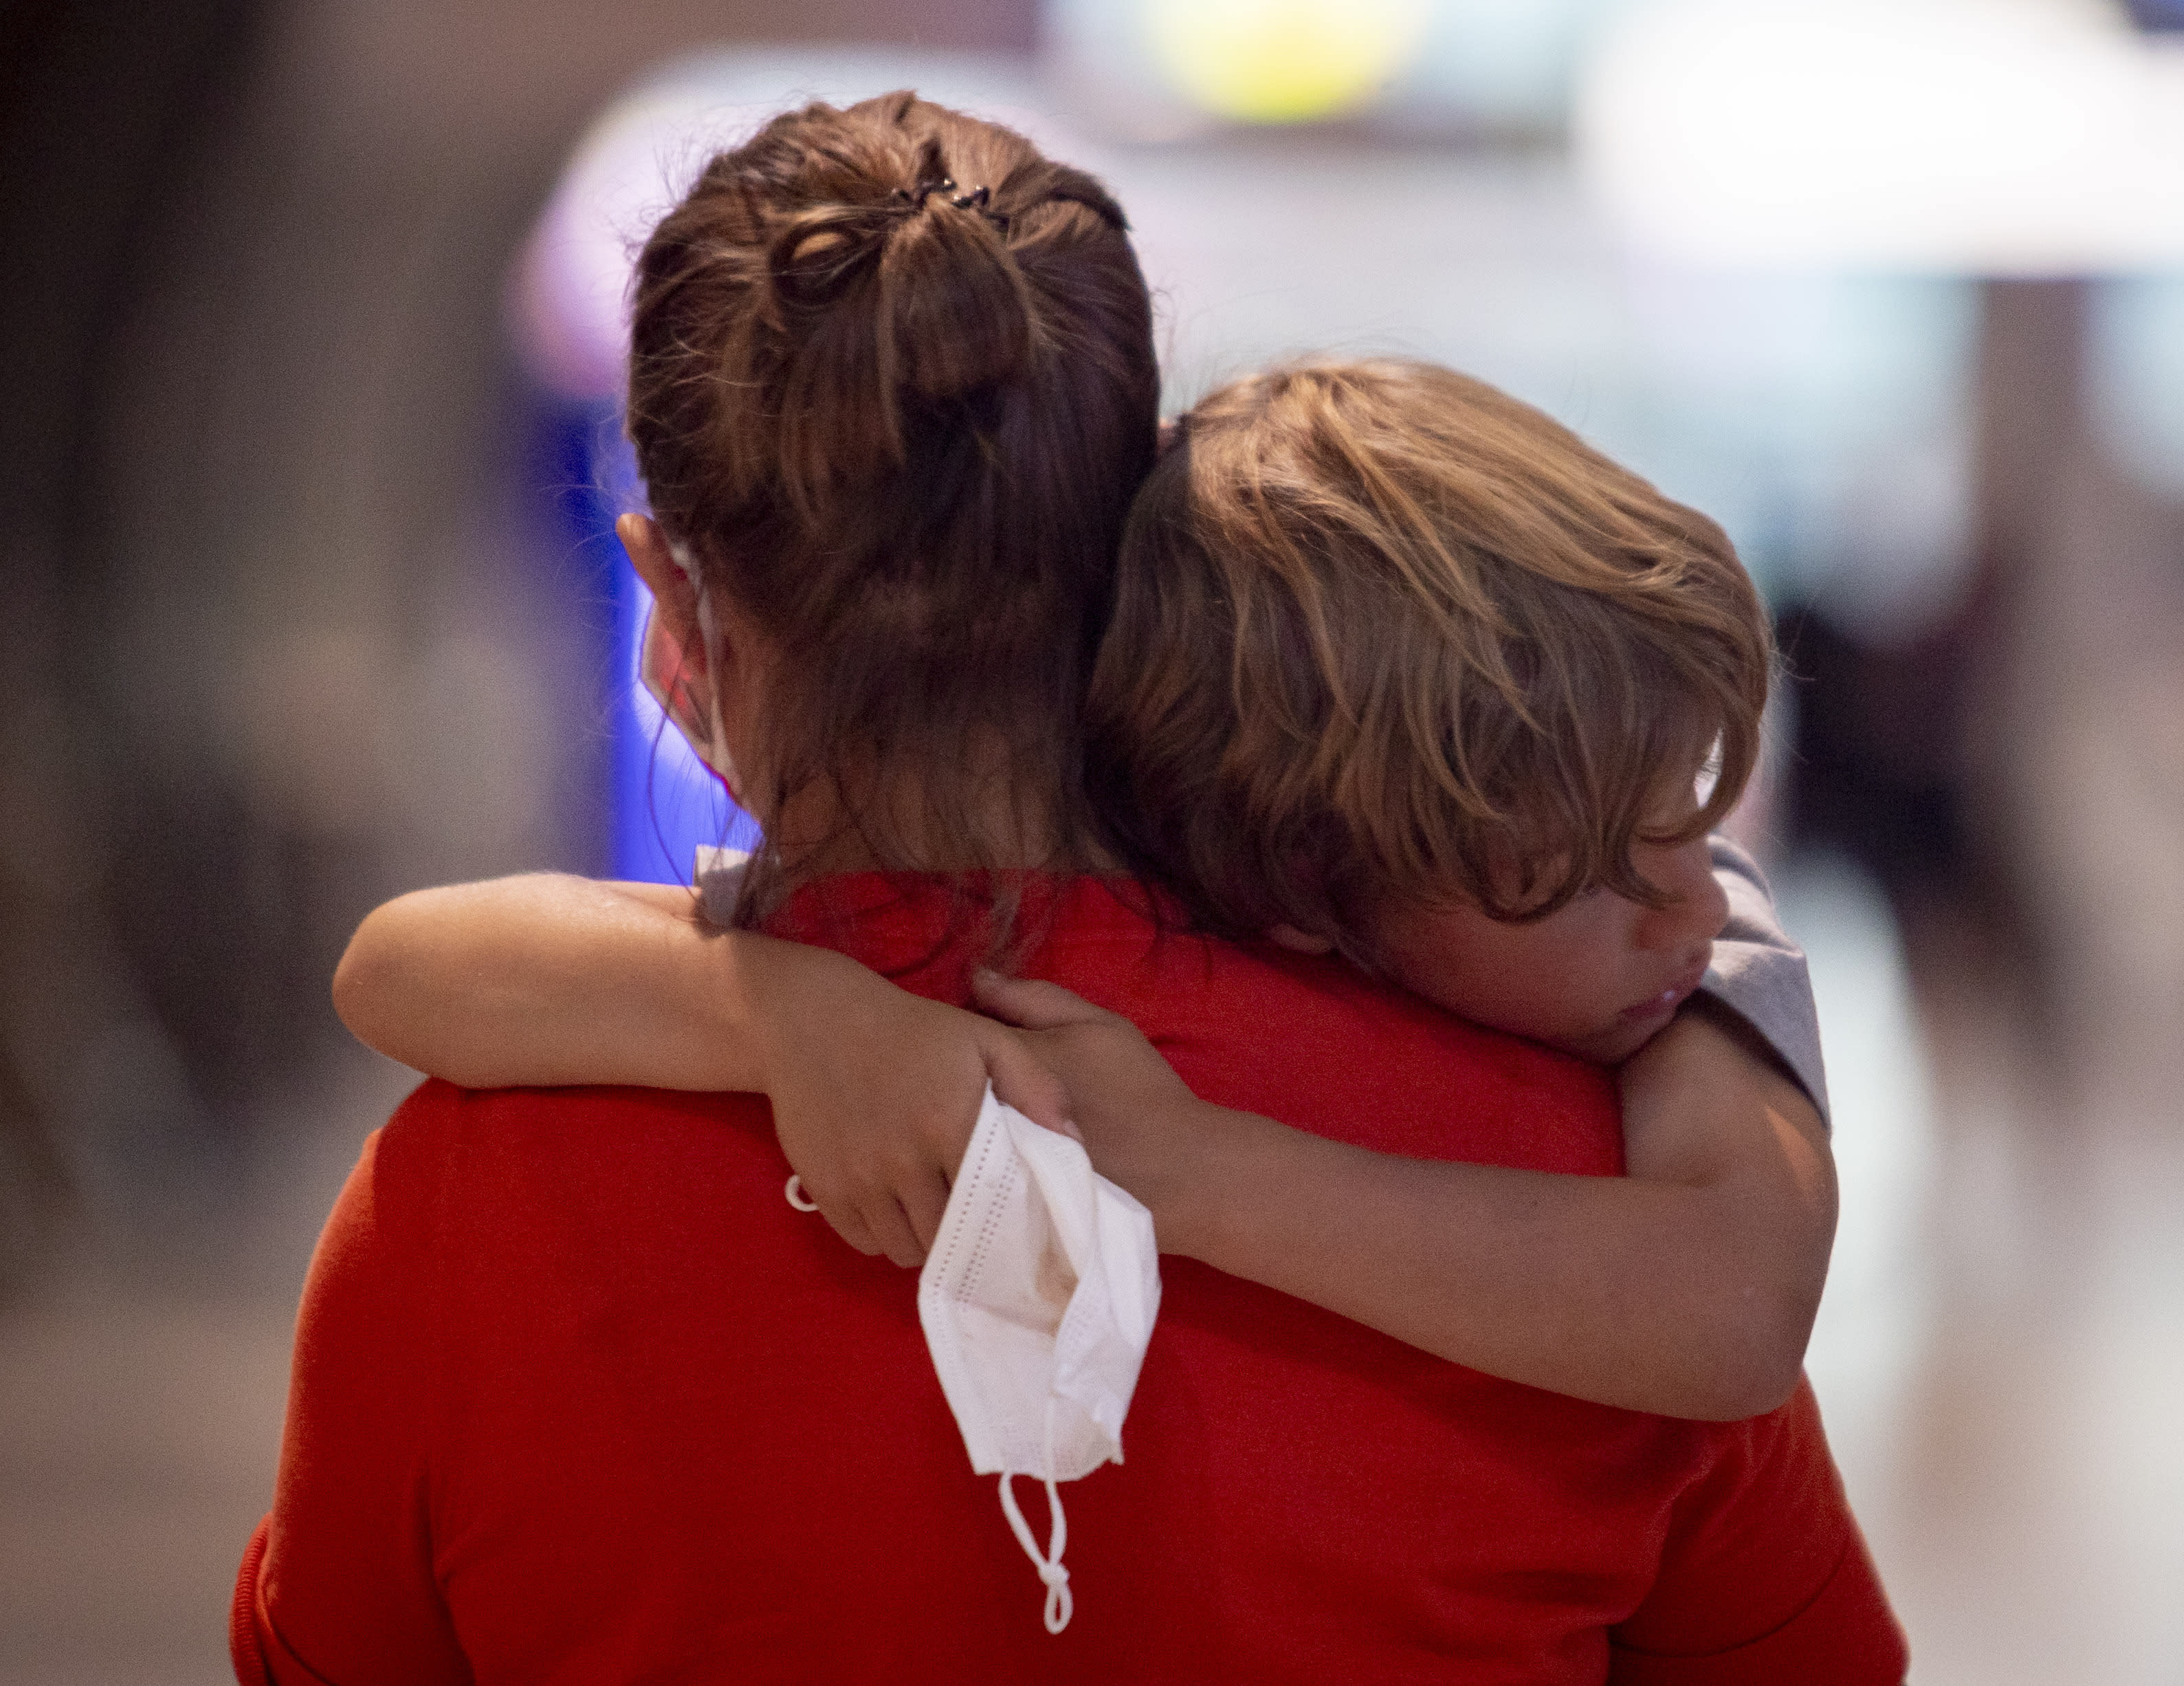 A tired boy is carried by his mother at the airport in Frankfurt, Germany, Saturday, Aug. 8, 2020. From Saturday on Covid-19 tests are mandatory for passengers coming from a high-risk-country. (AP Photo/Michael Probst)